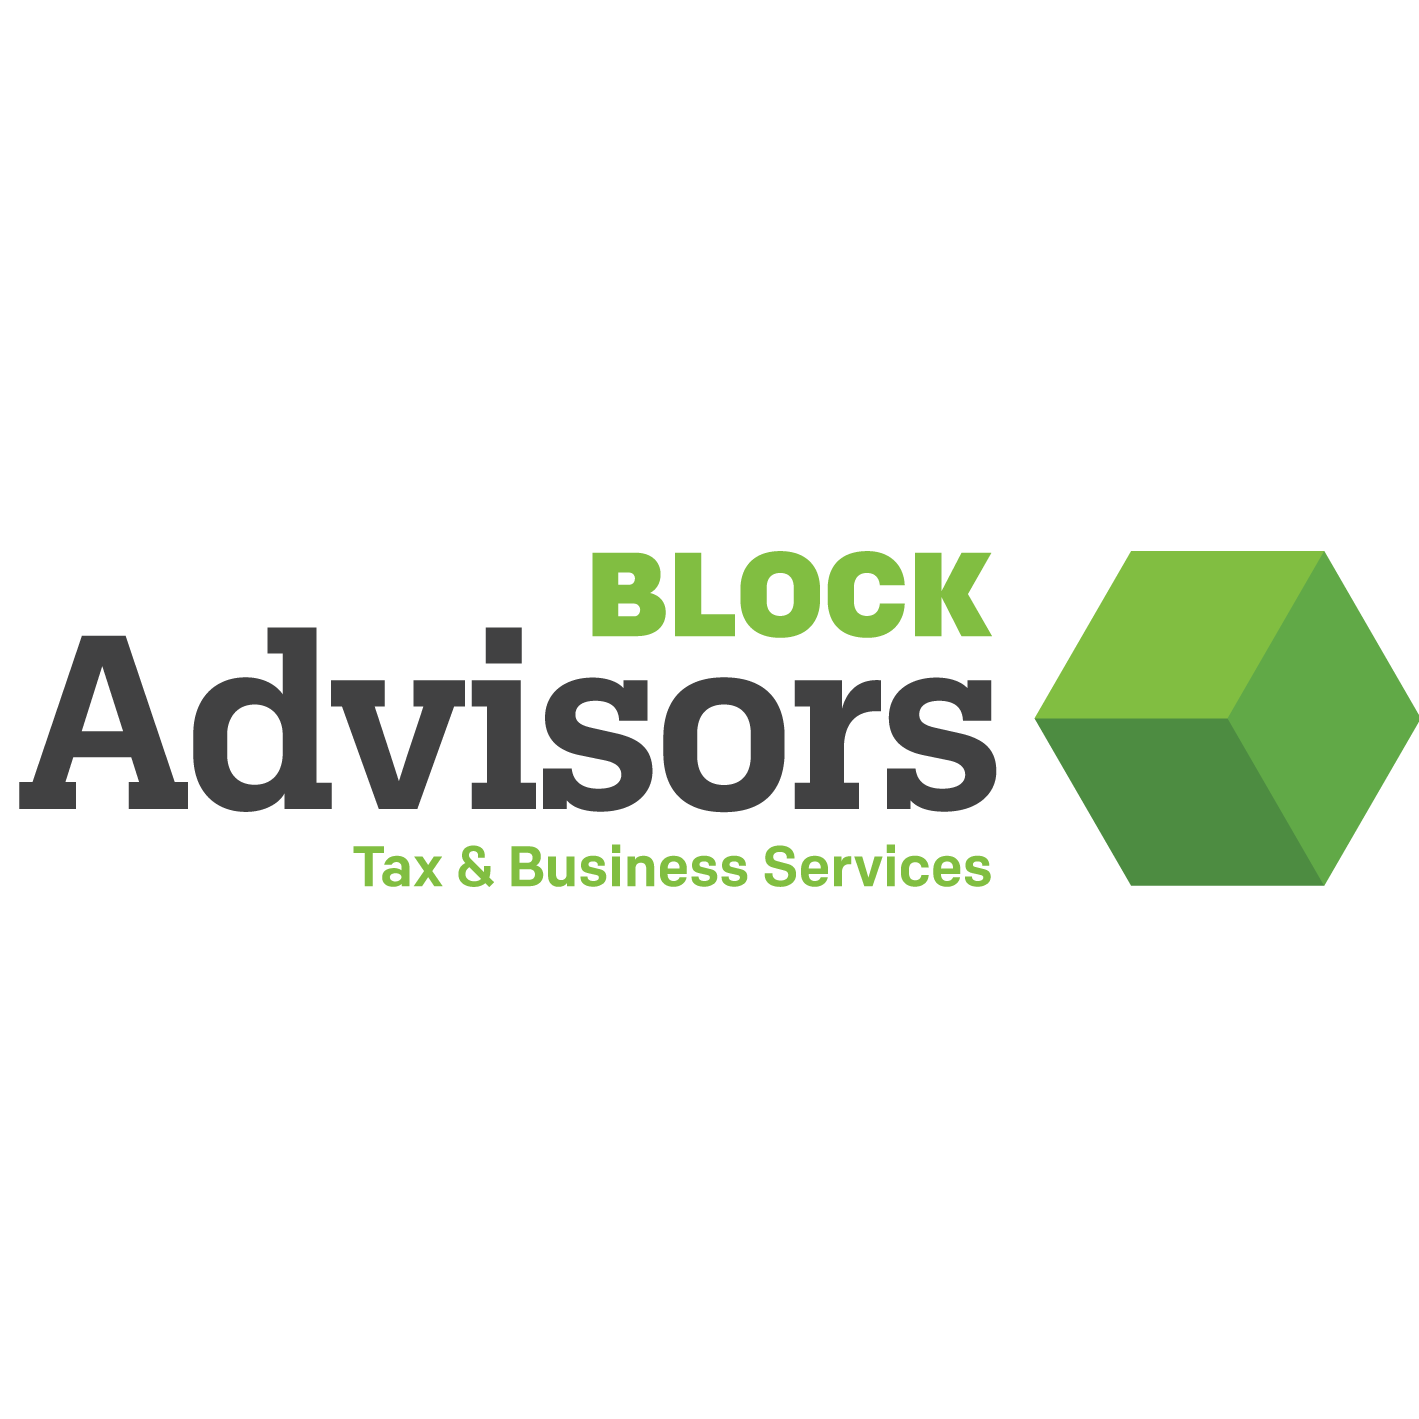 H&R BLOCK - Coral Gables, FL 33134 - (256) 820-3013 | ShowMeLocal.com